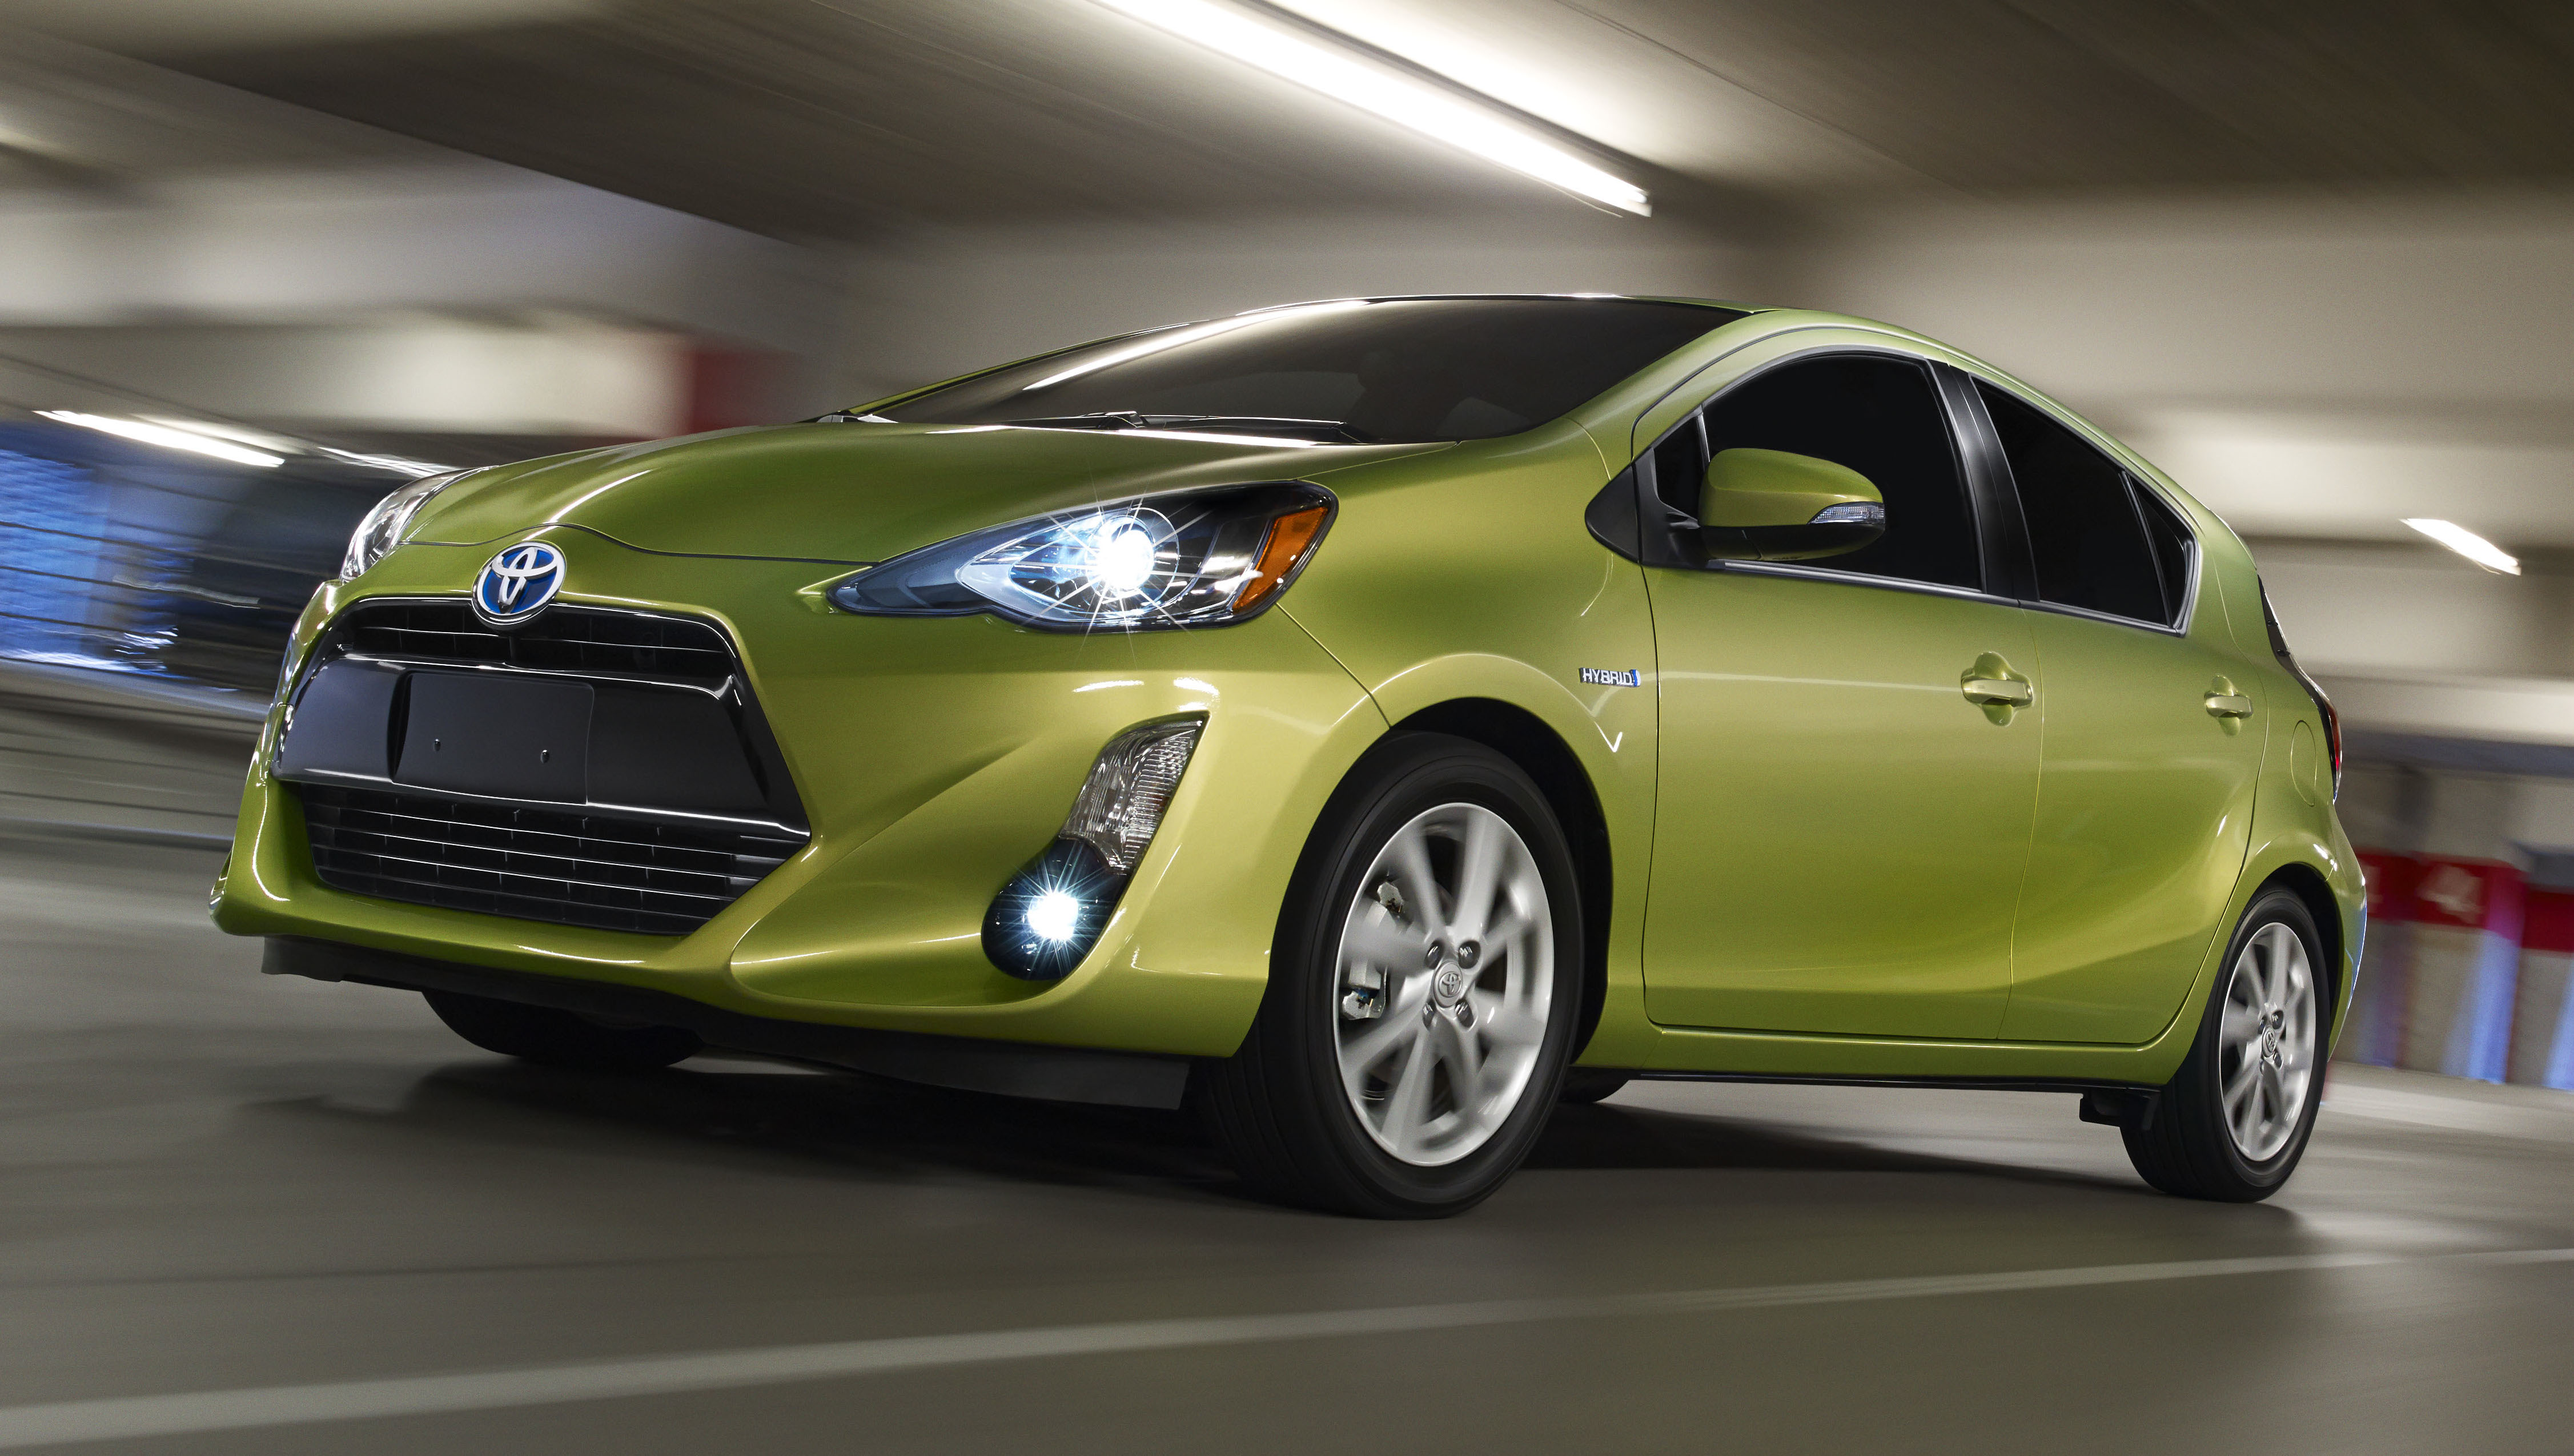 2015 Toyota Prius C Facelift Upgraded Inside And Out